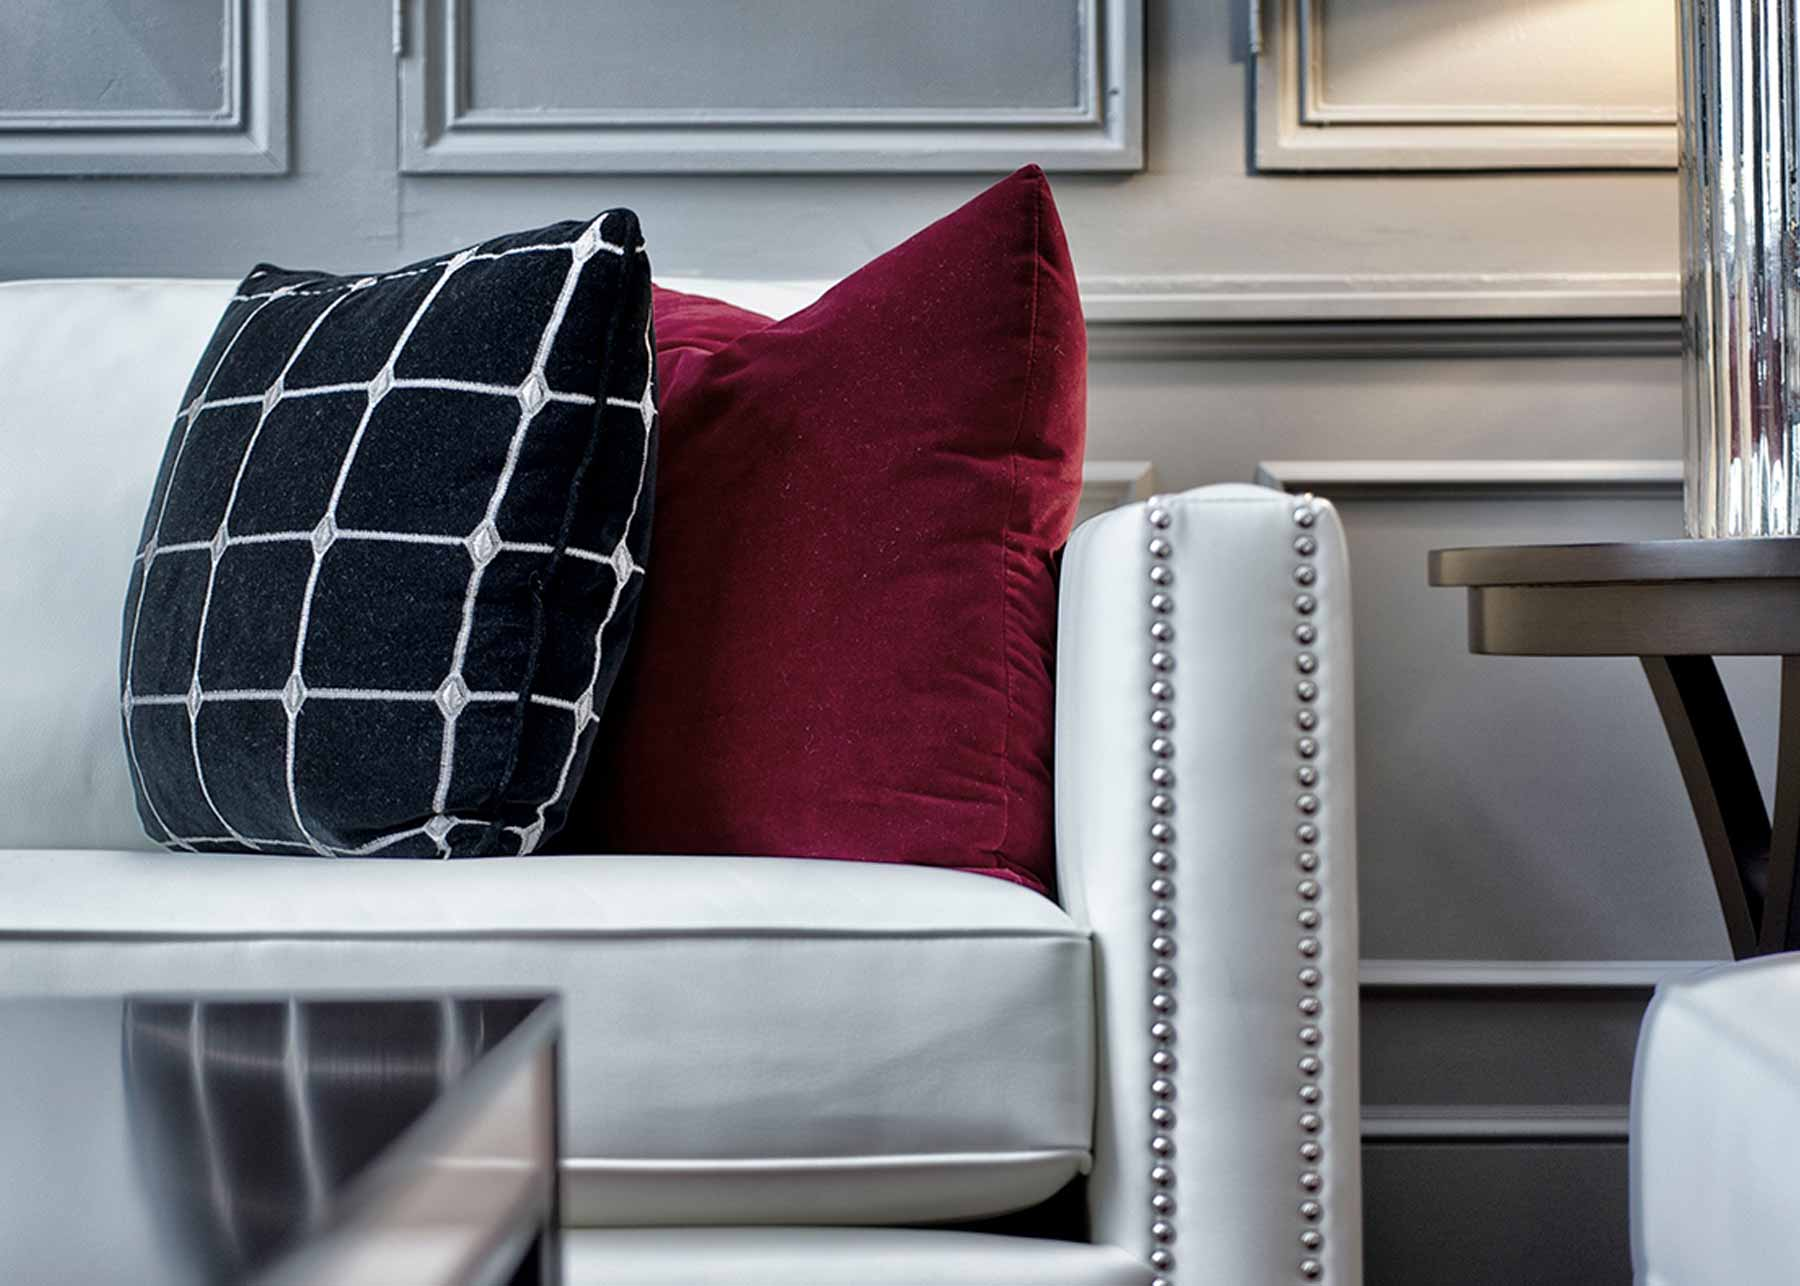 close up shot of a couch and two decorative pillows